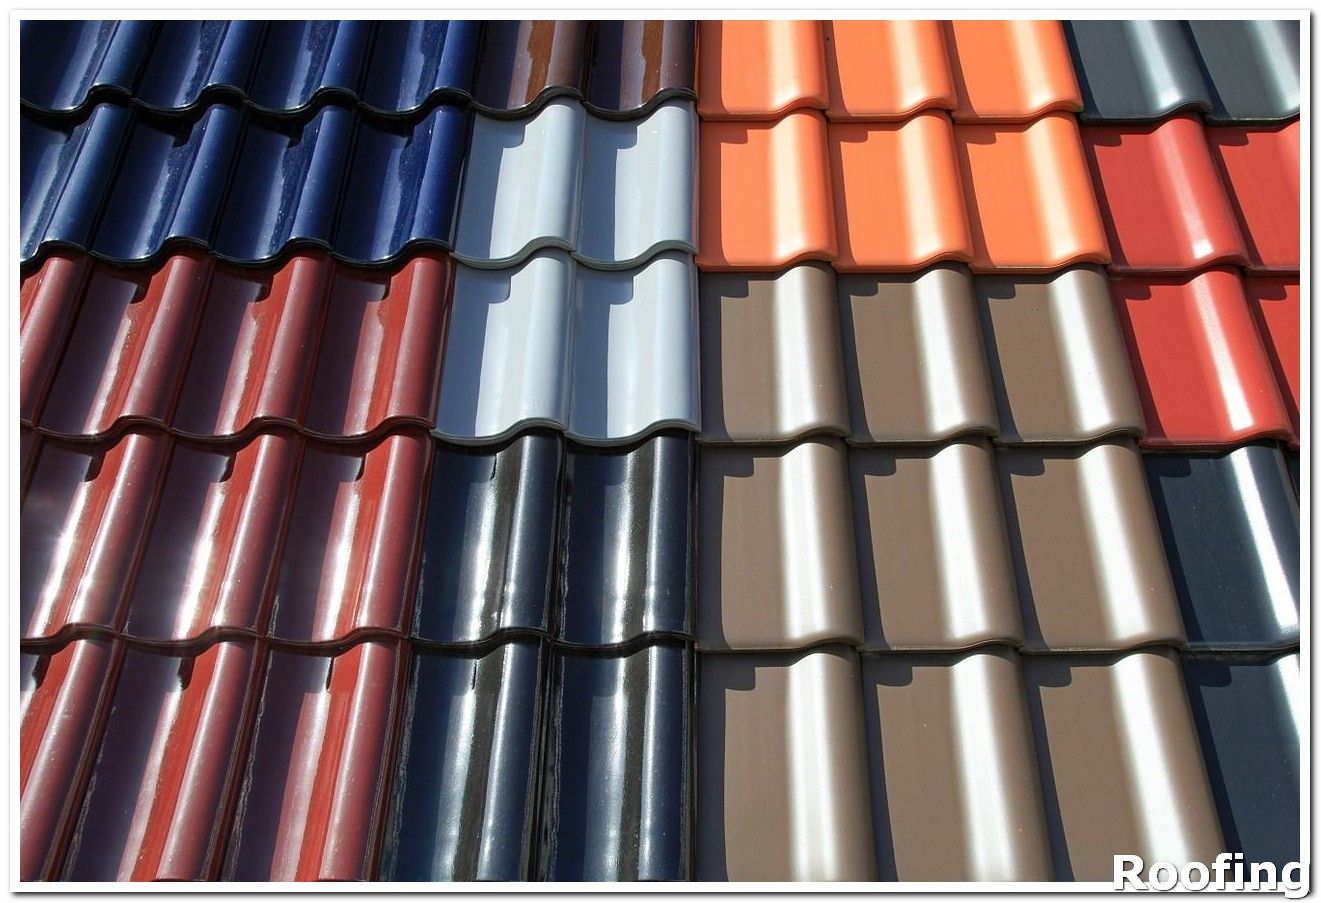 Roofing Materials If You Are Trying To Replace Or Repair A Roof On Your Own Always Take Precautions Make Sure To Wea Solar Paint Roof Tiles Roof Repair